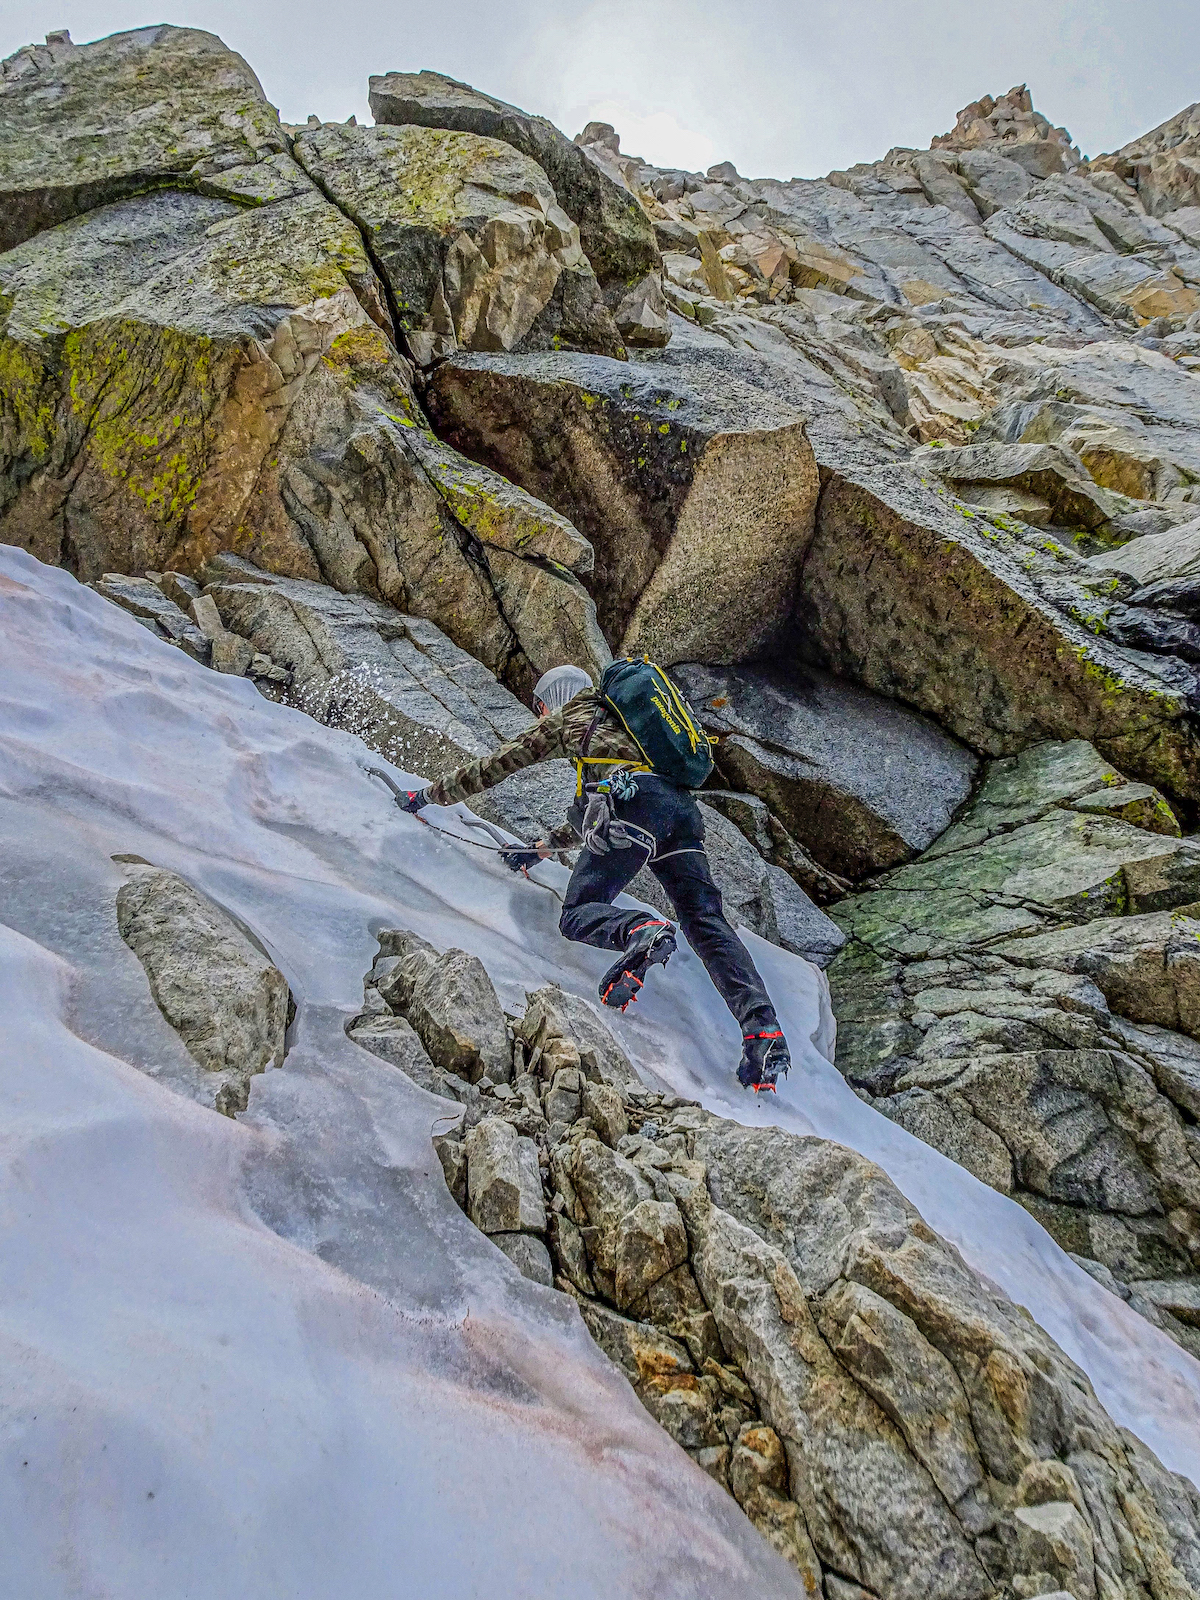 Sinker sticks in sweet summer Styrofoam (alpine ice). The Quarks are the perfect companion for icy, snicey couloirs. McCrea is pictured here in the Dress for Less Couloir, Mt. Tom Ross, Sierra Nevada Range. [Photo] Richard Shore